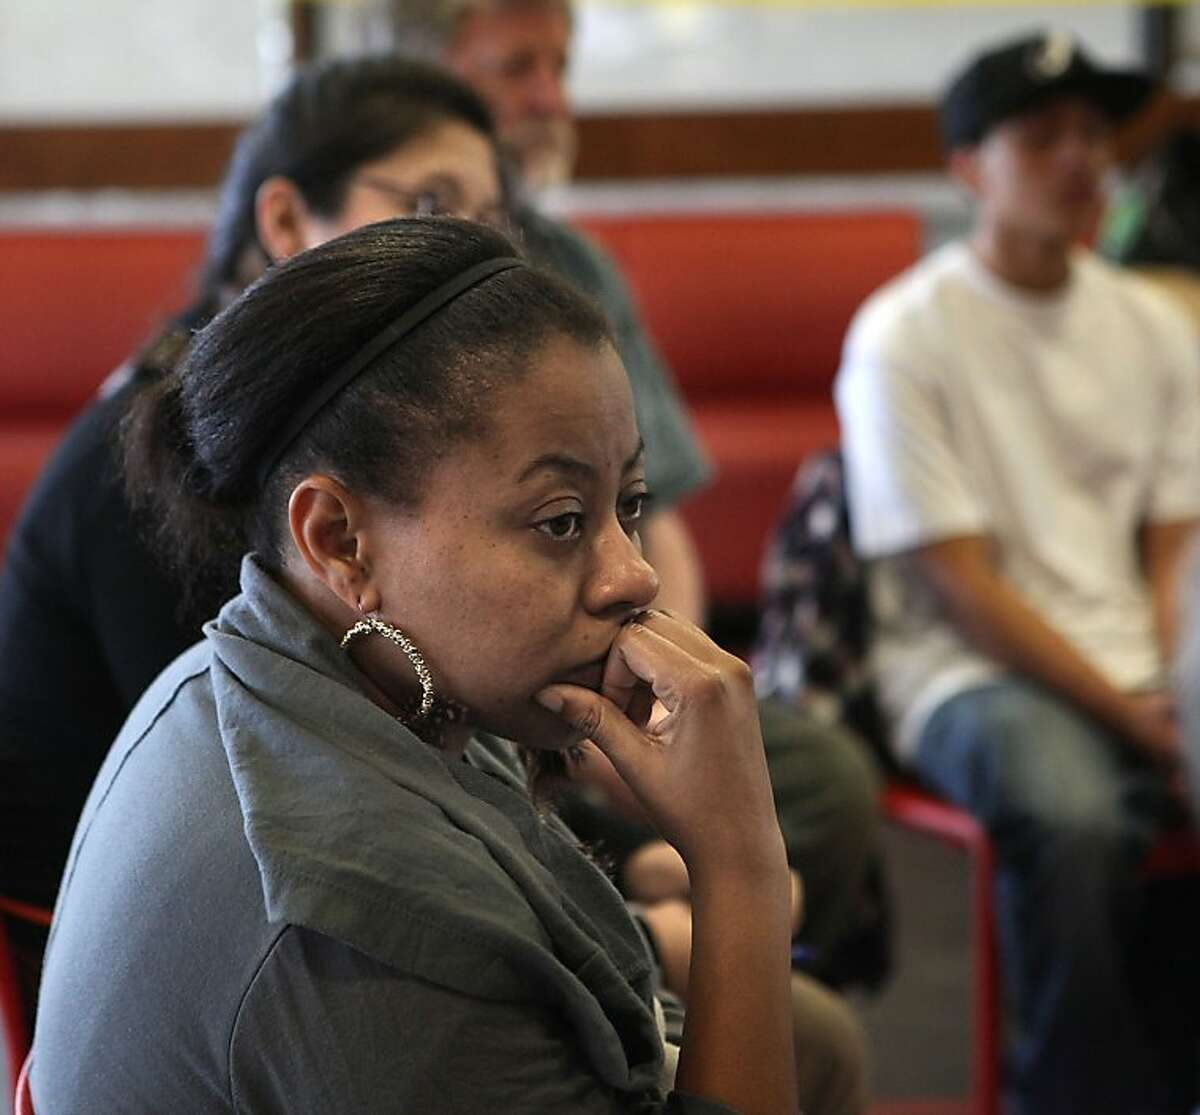 Student and organizer Shanell Williams listens to people's concerns in a meeting of The Save CCSF coalition in a lounge at CCSF student union in San Francisco, Calif., on Wednesday, October 10, 2012.